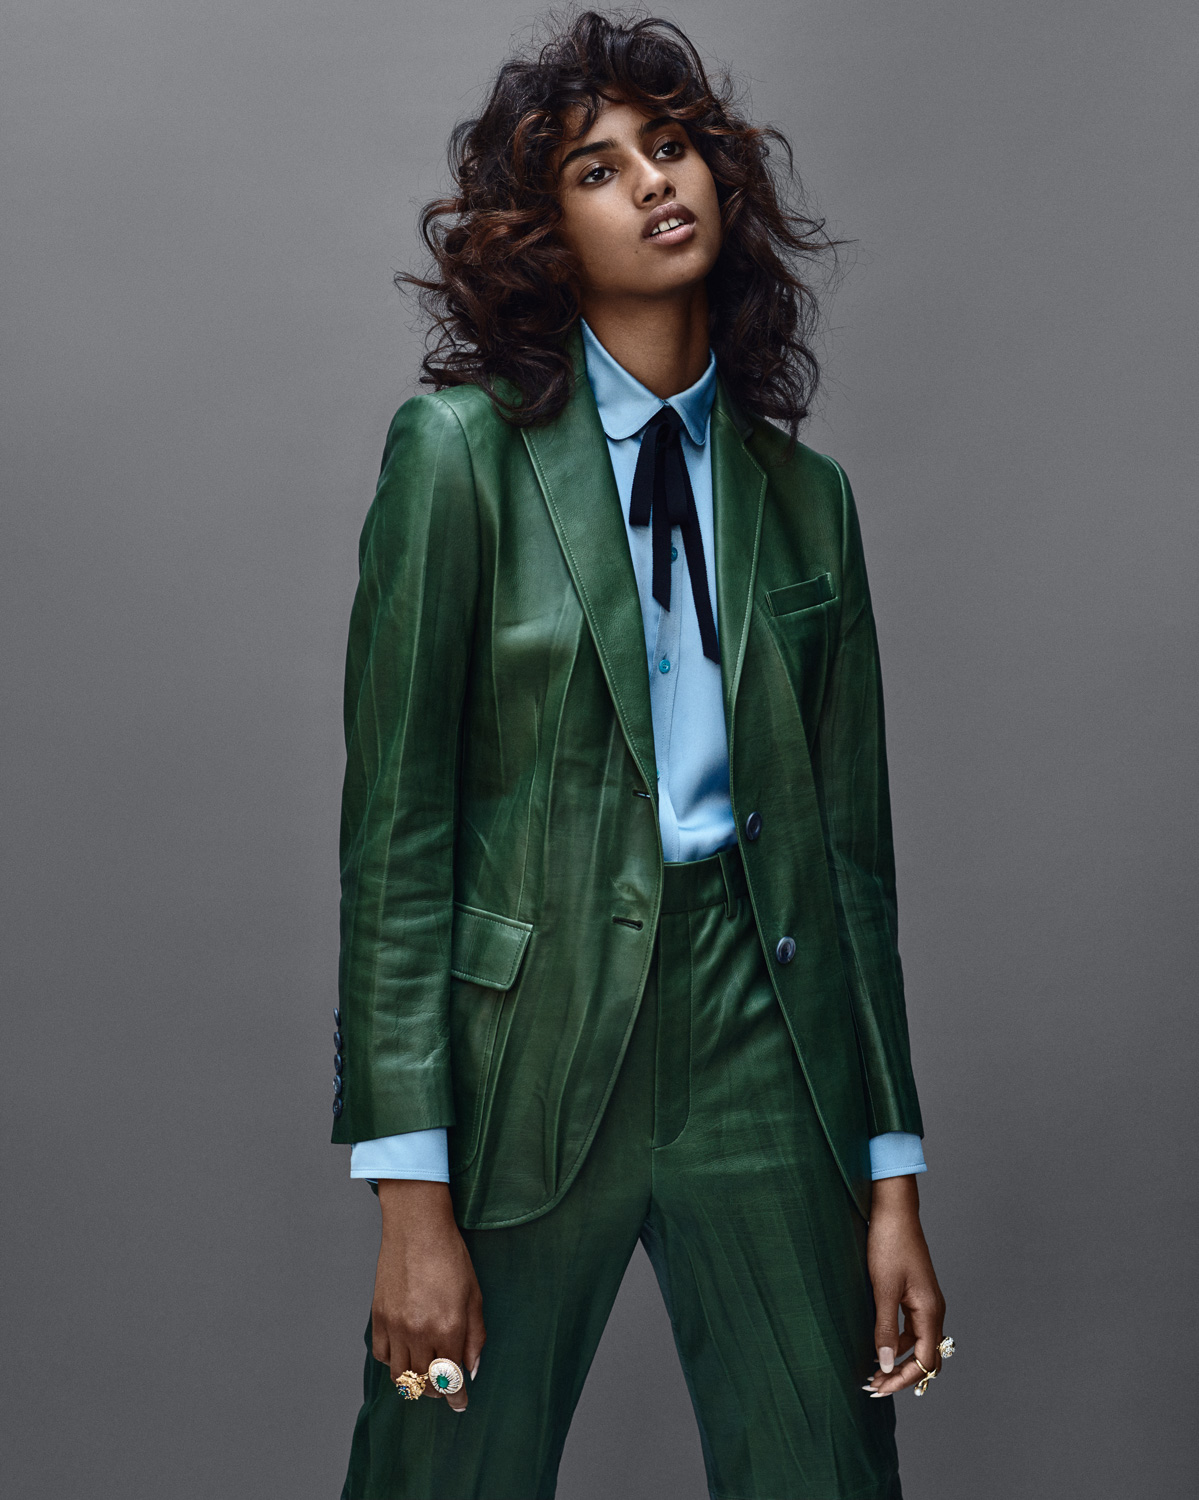 Imaan Hammam for VogueNL by Marc de Groot-13